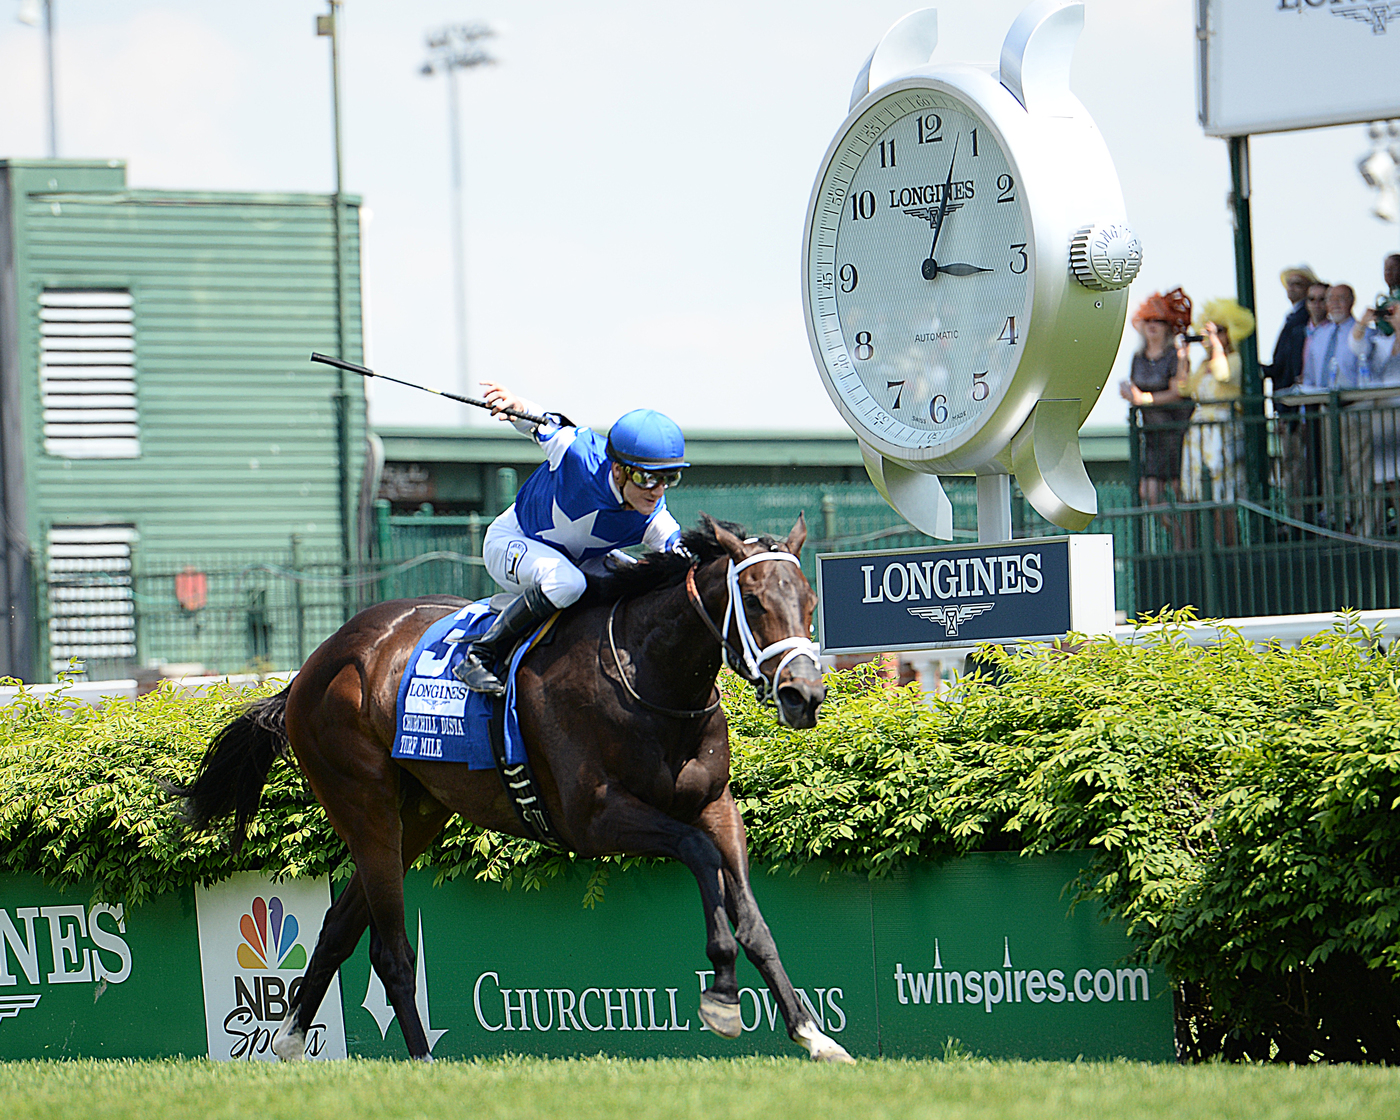 Longines Flat Racing Event: American Pharoah gallops to victory in front of record crowd at the 141st Kentucky Derby  2